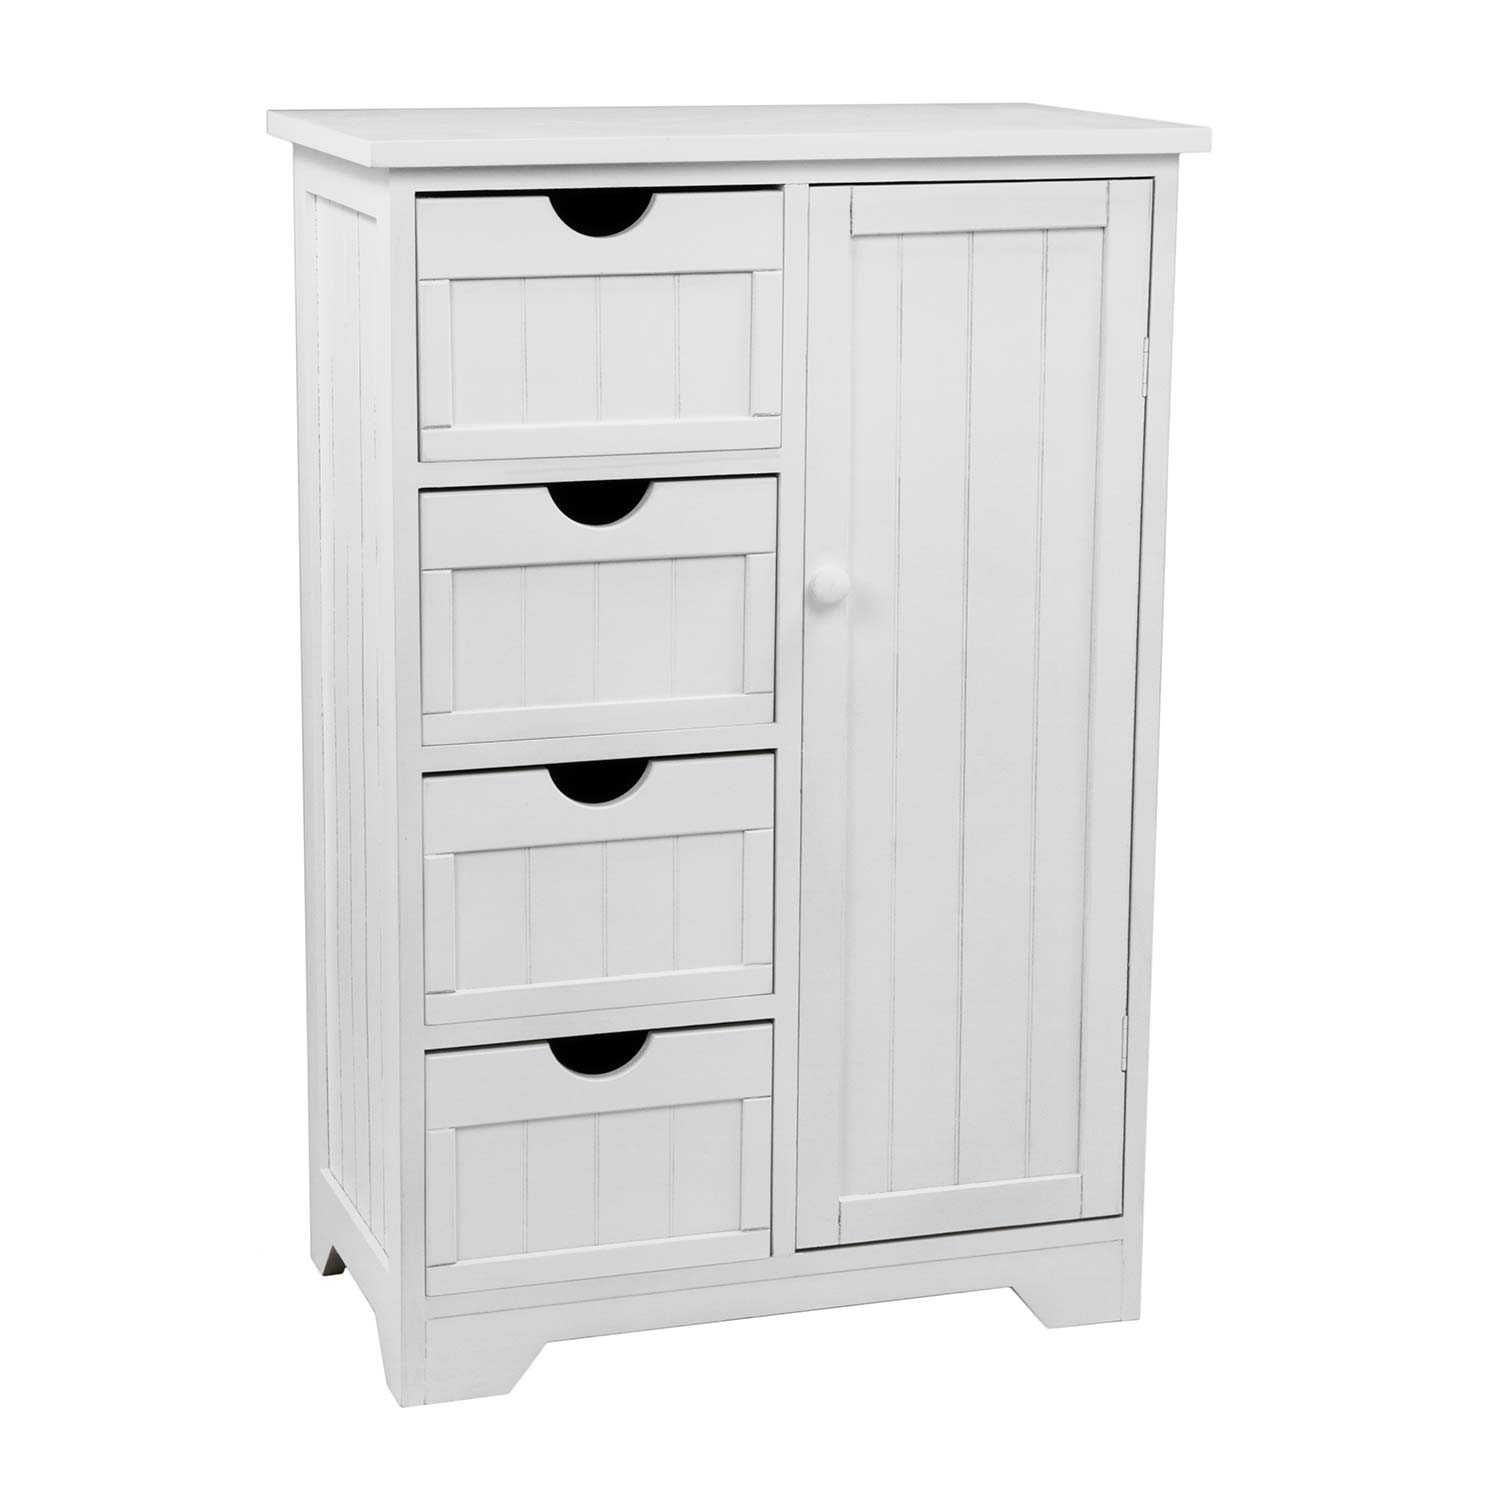 Bathroom Cabinets 30cm Wide the tampa 4 drawer cupboard unit is a neutral coloured 4 drawer